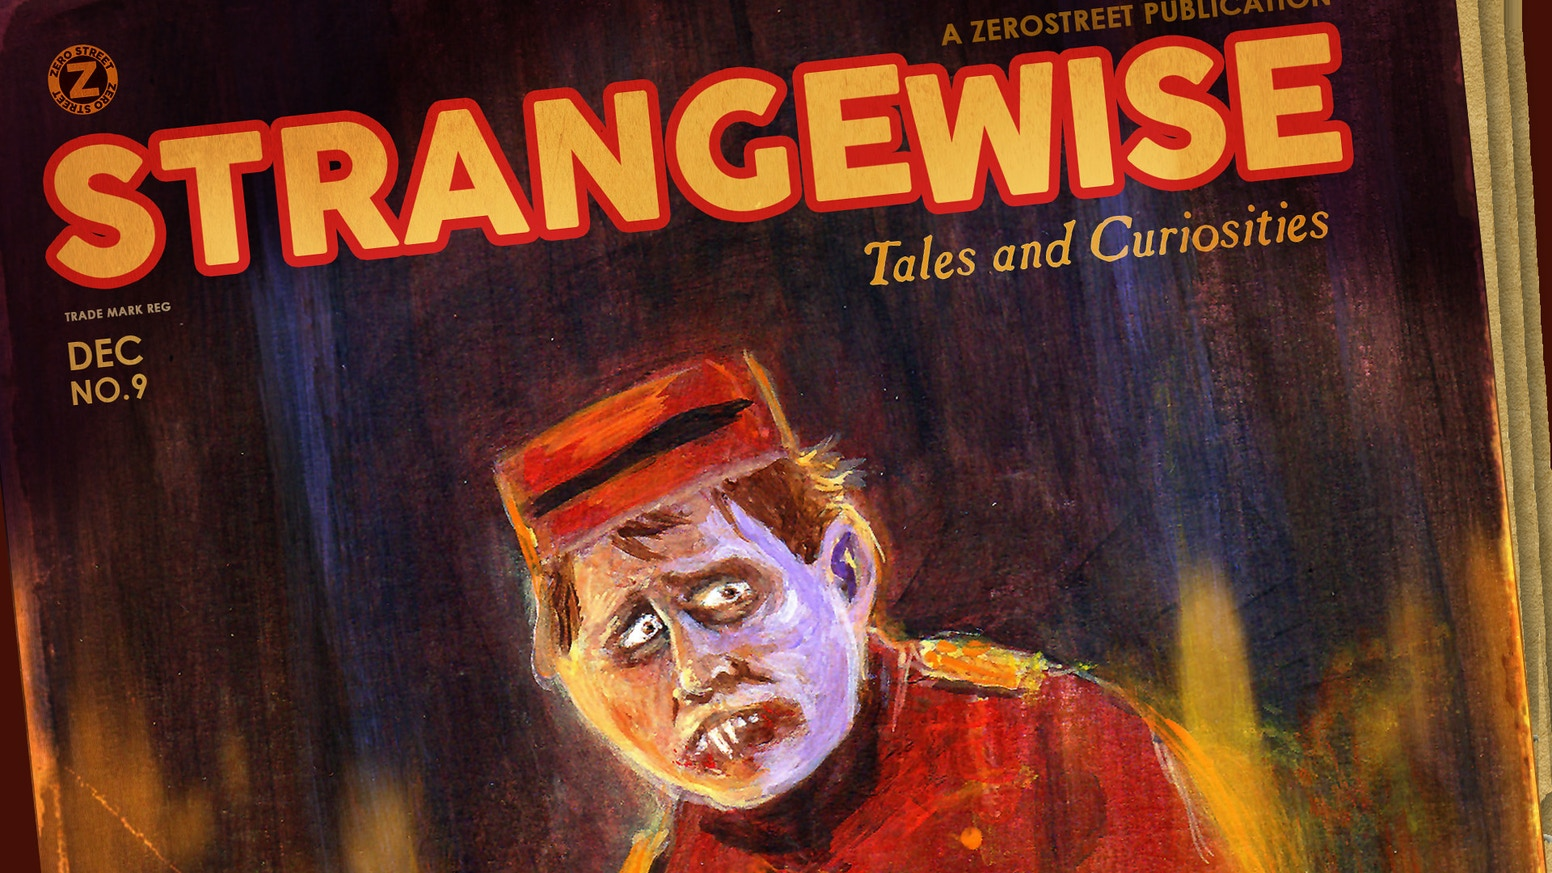 Strangewise No.9 is available at Amazon!